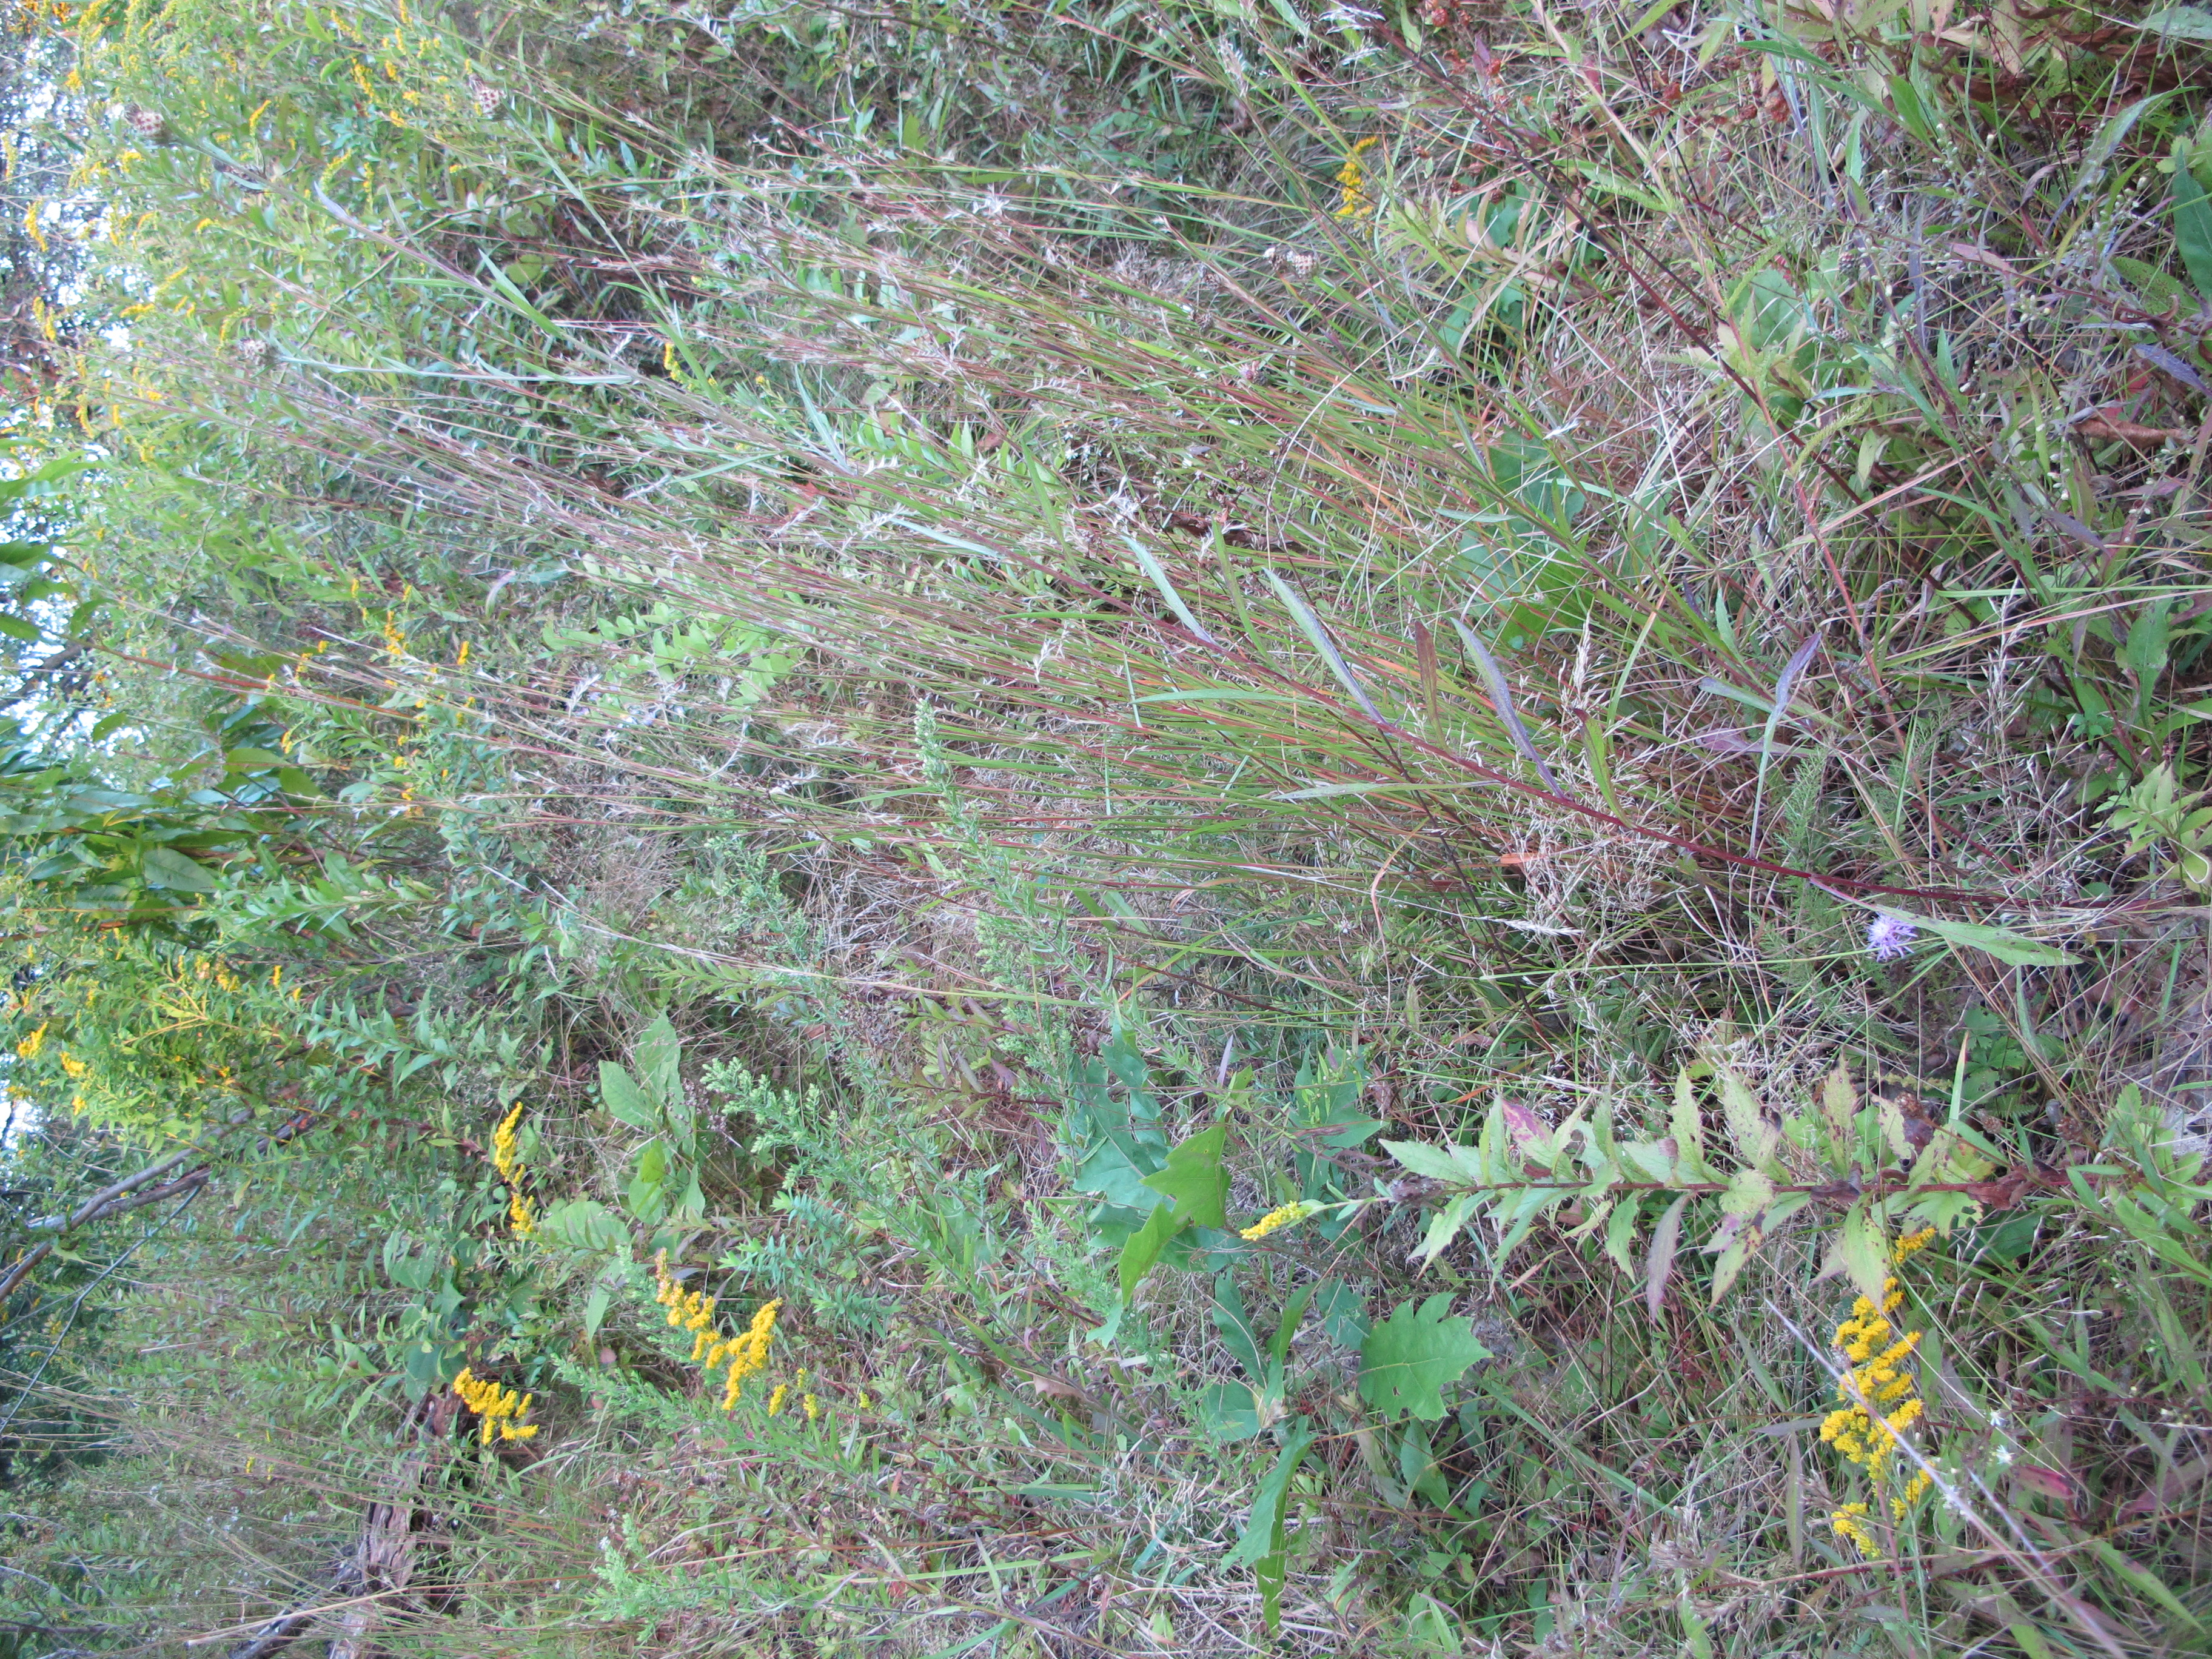 grass and yellow goldenrod flowers